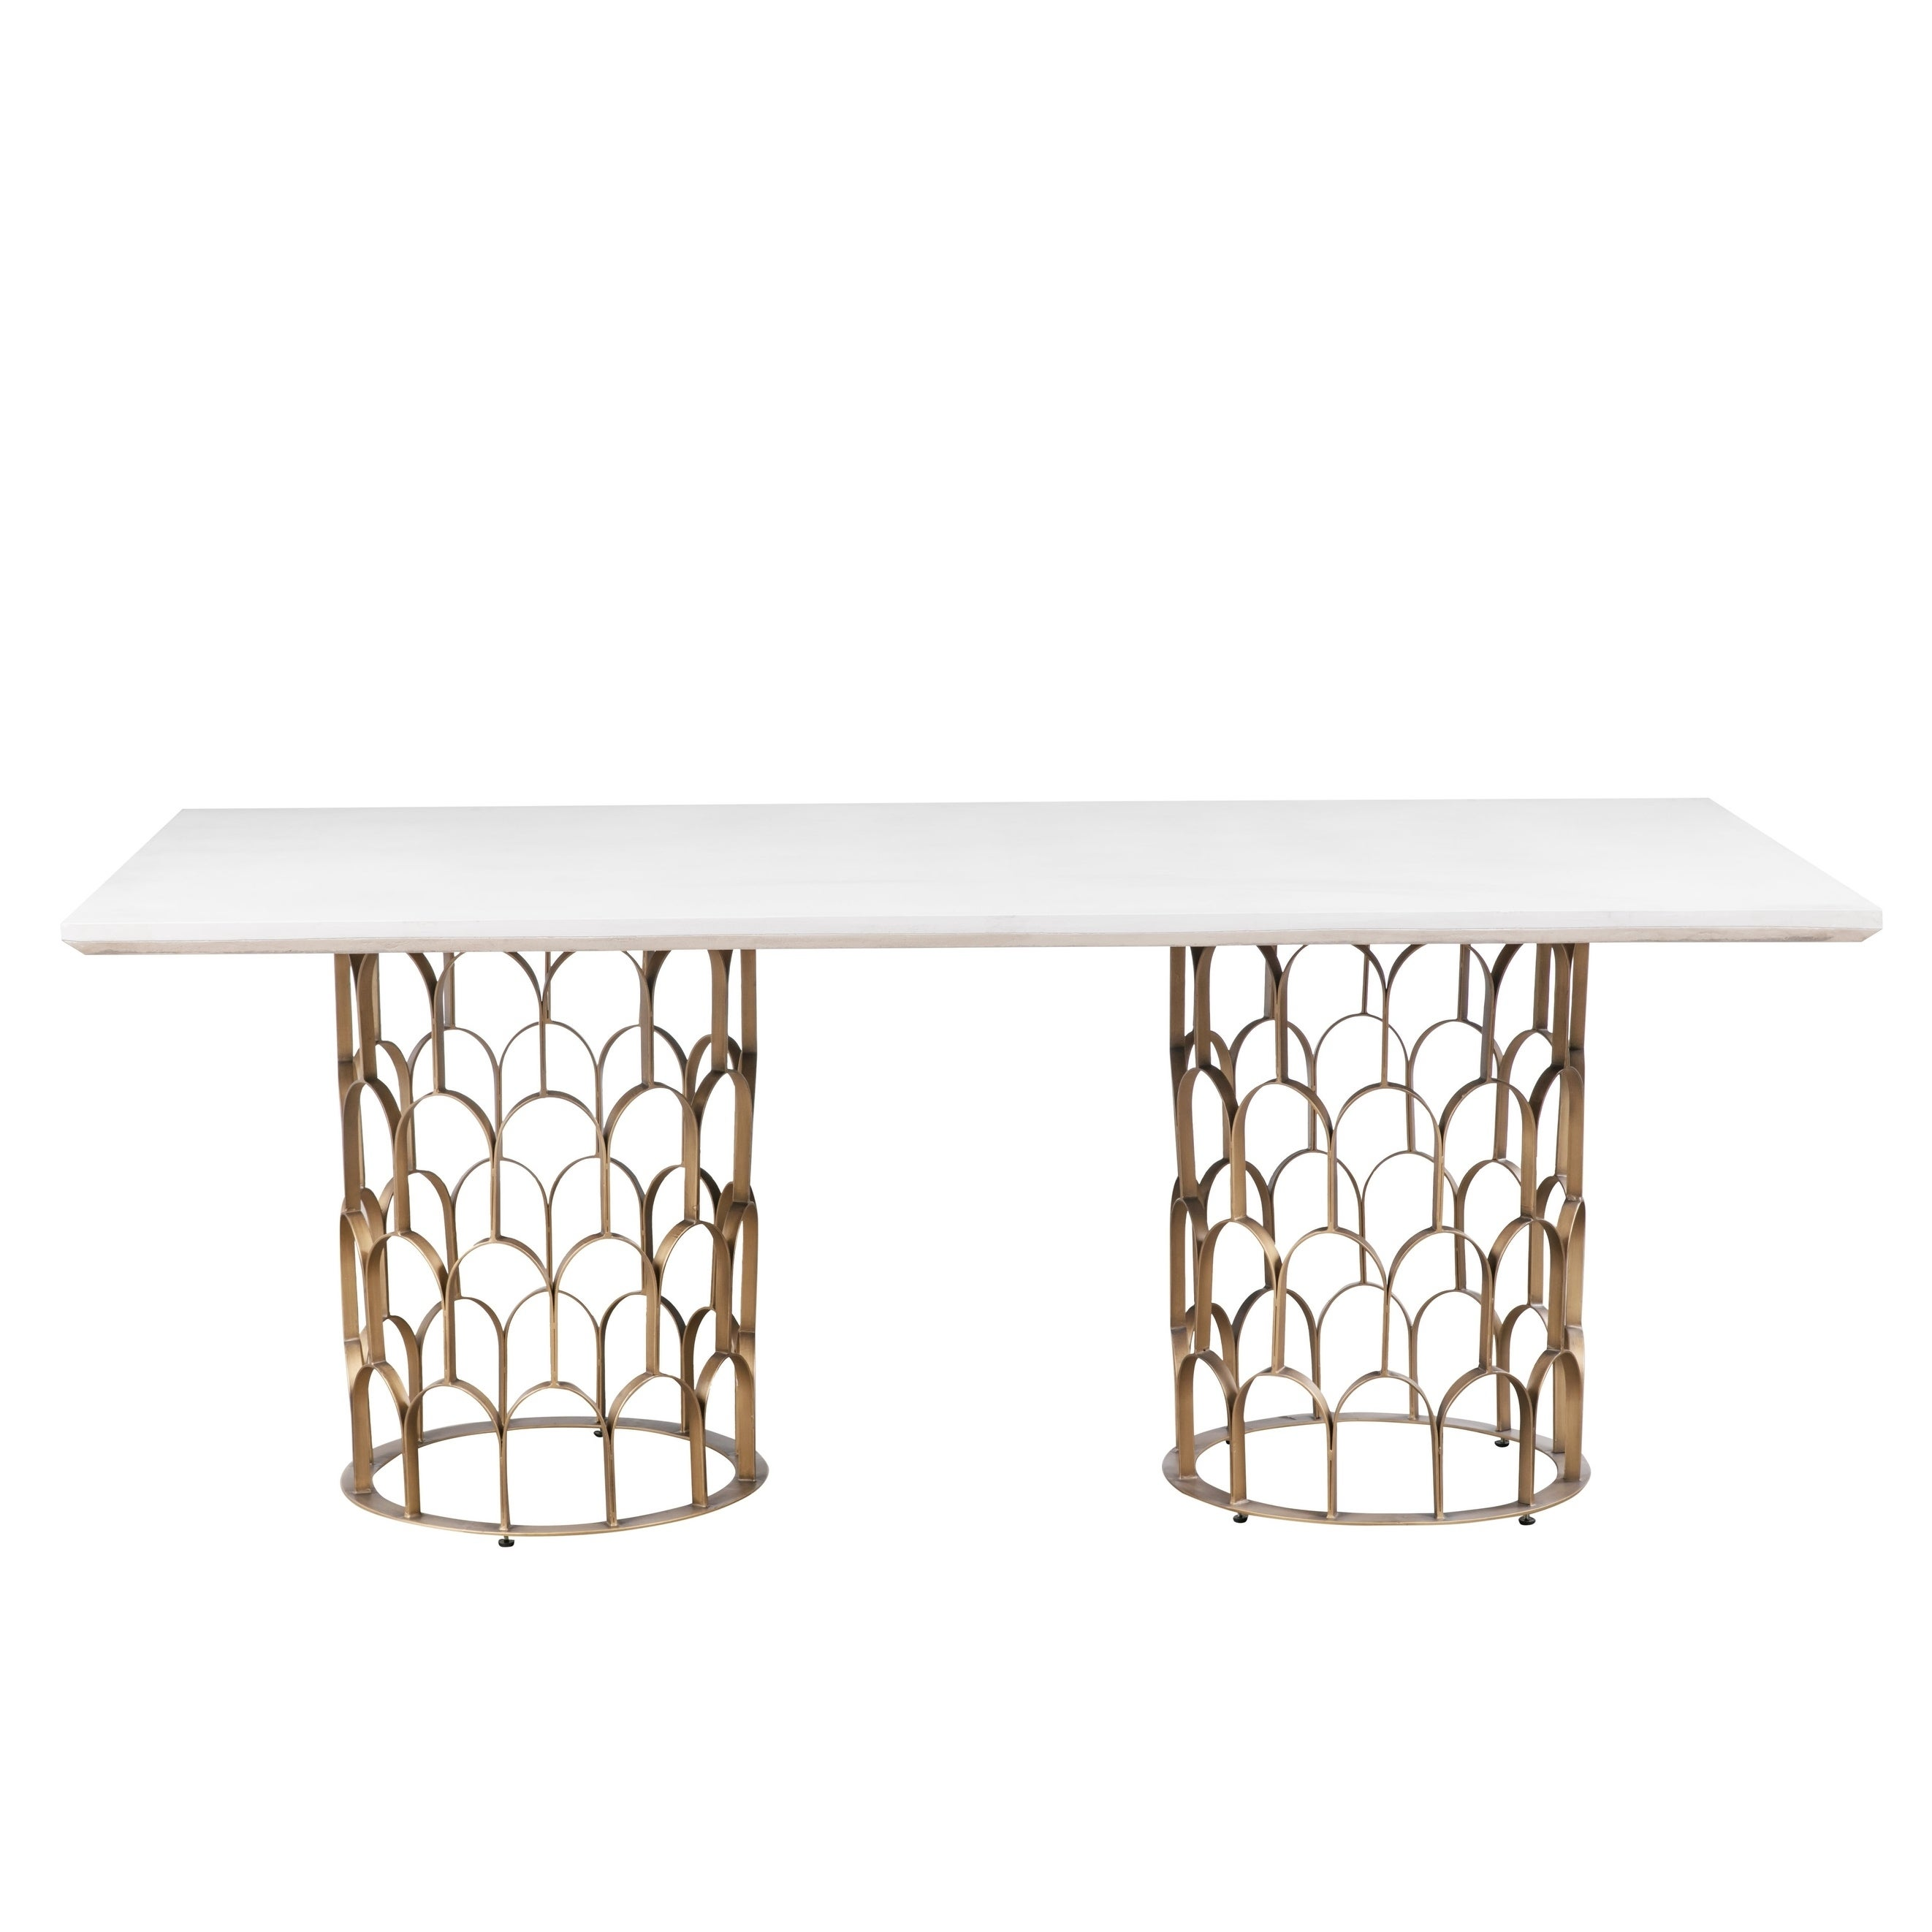 24061f2d3763 Shop Gatsby Concrete Dining Table - White - Free Shipping Today - Overstock  - 20355254